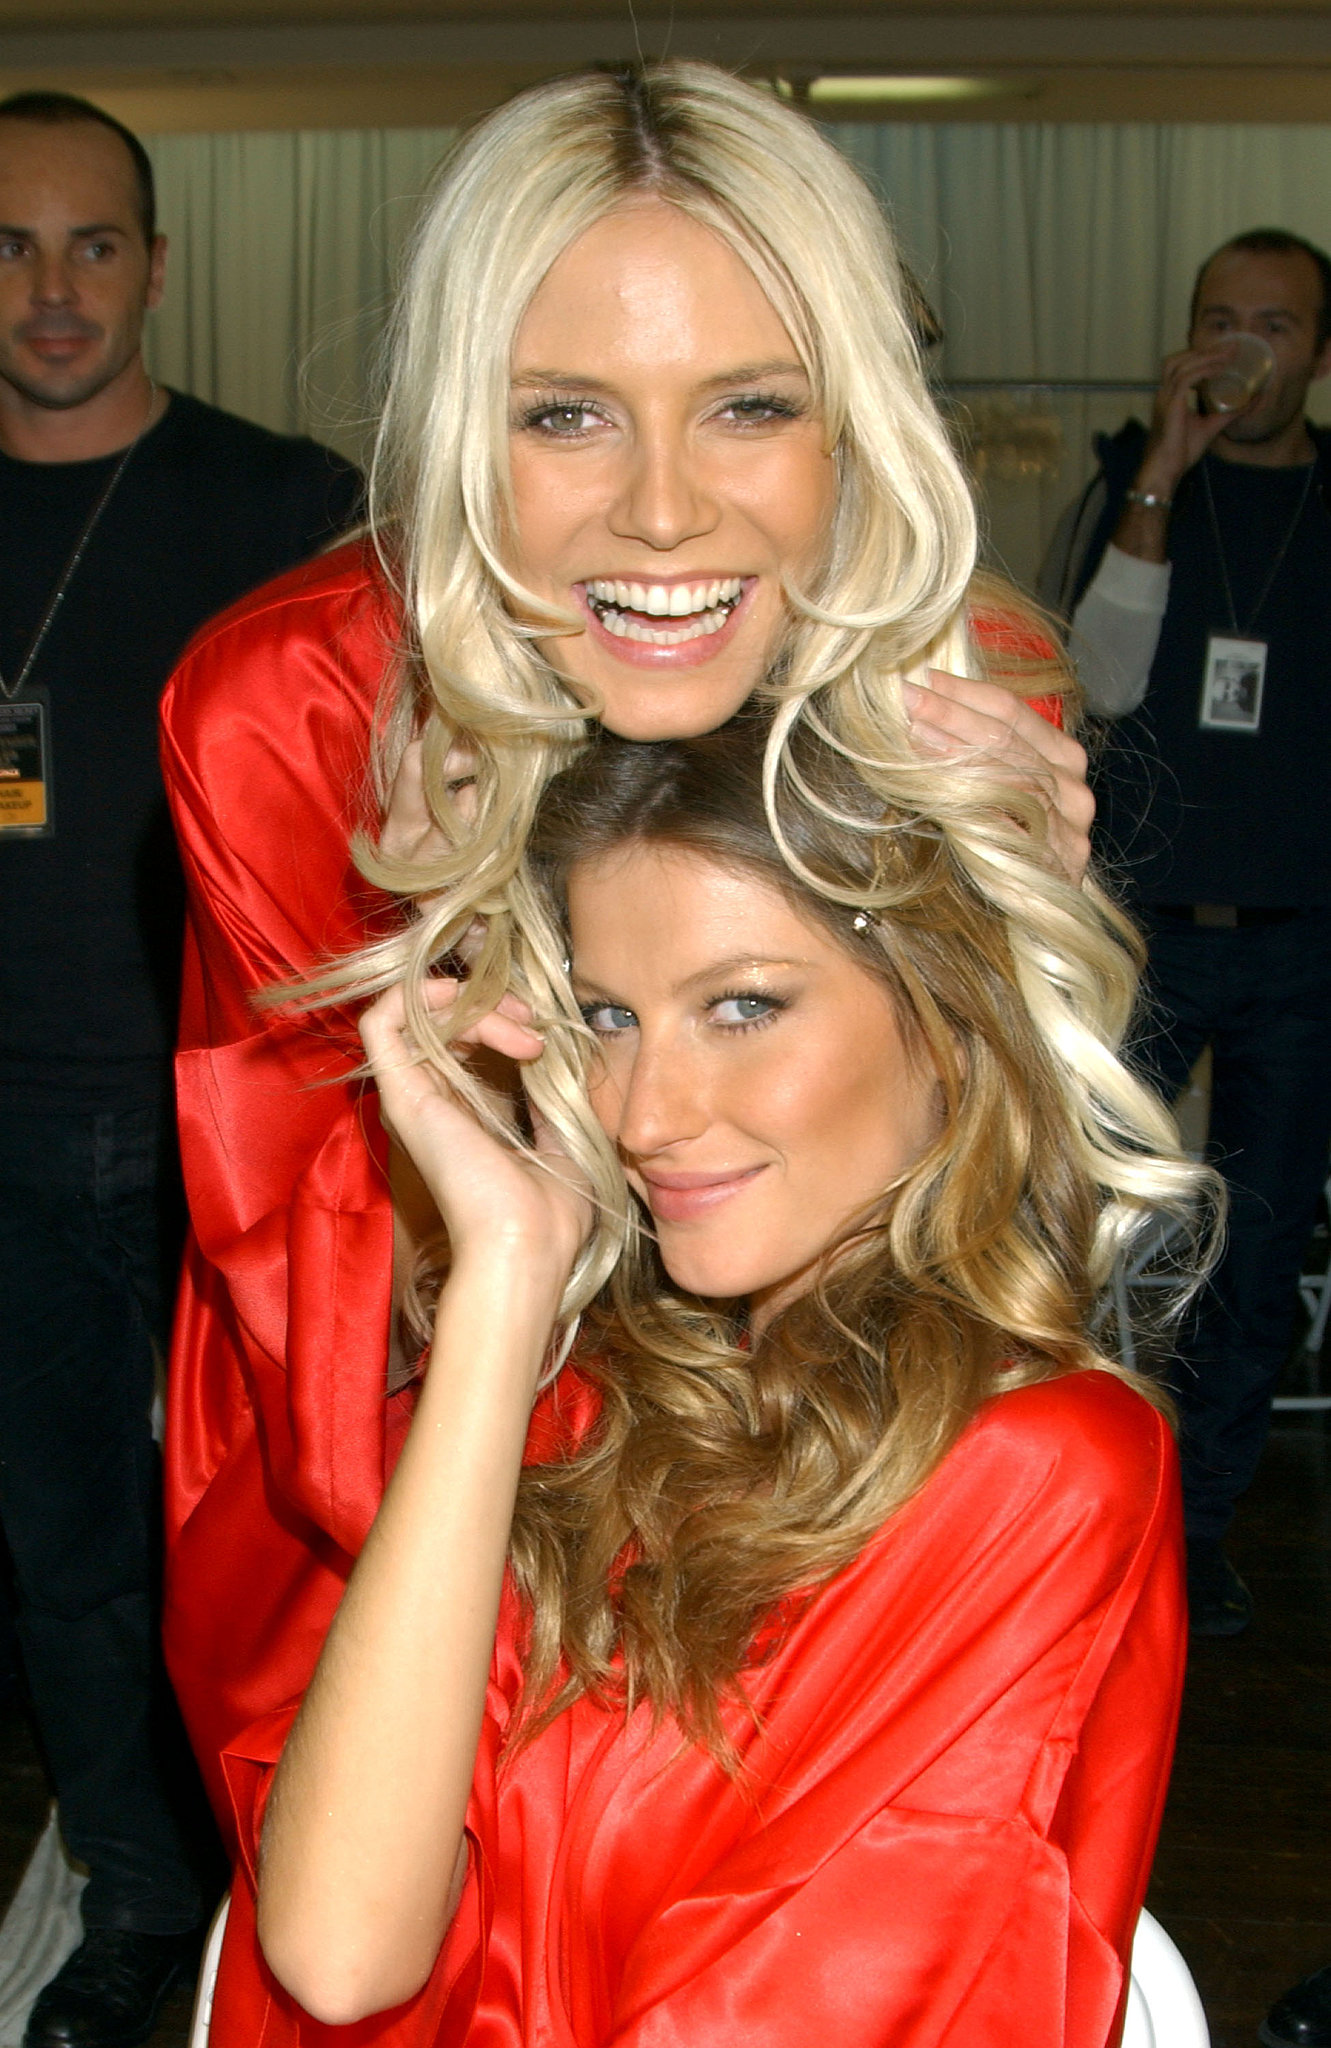 Heidi and Gisele got silly backstage in 2003.